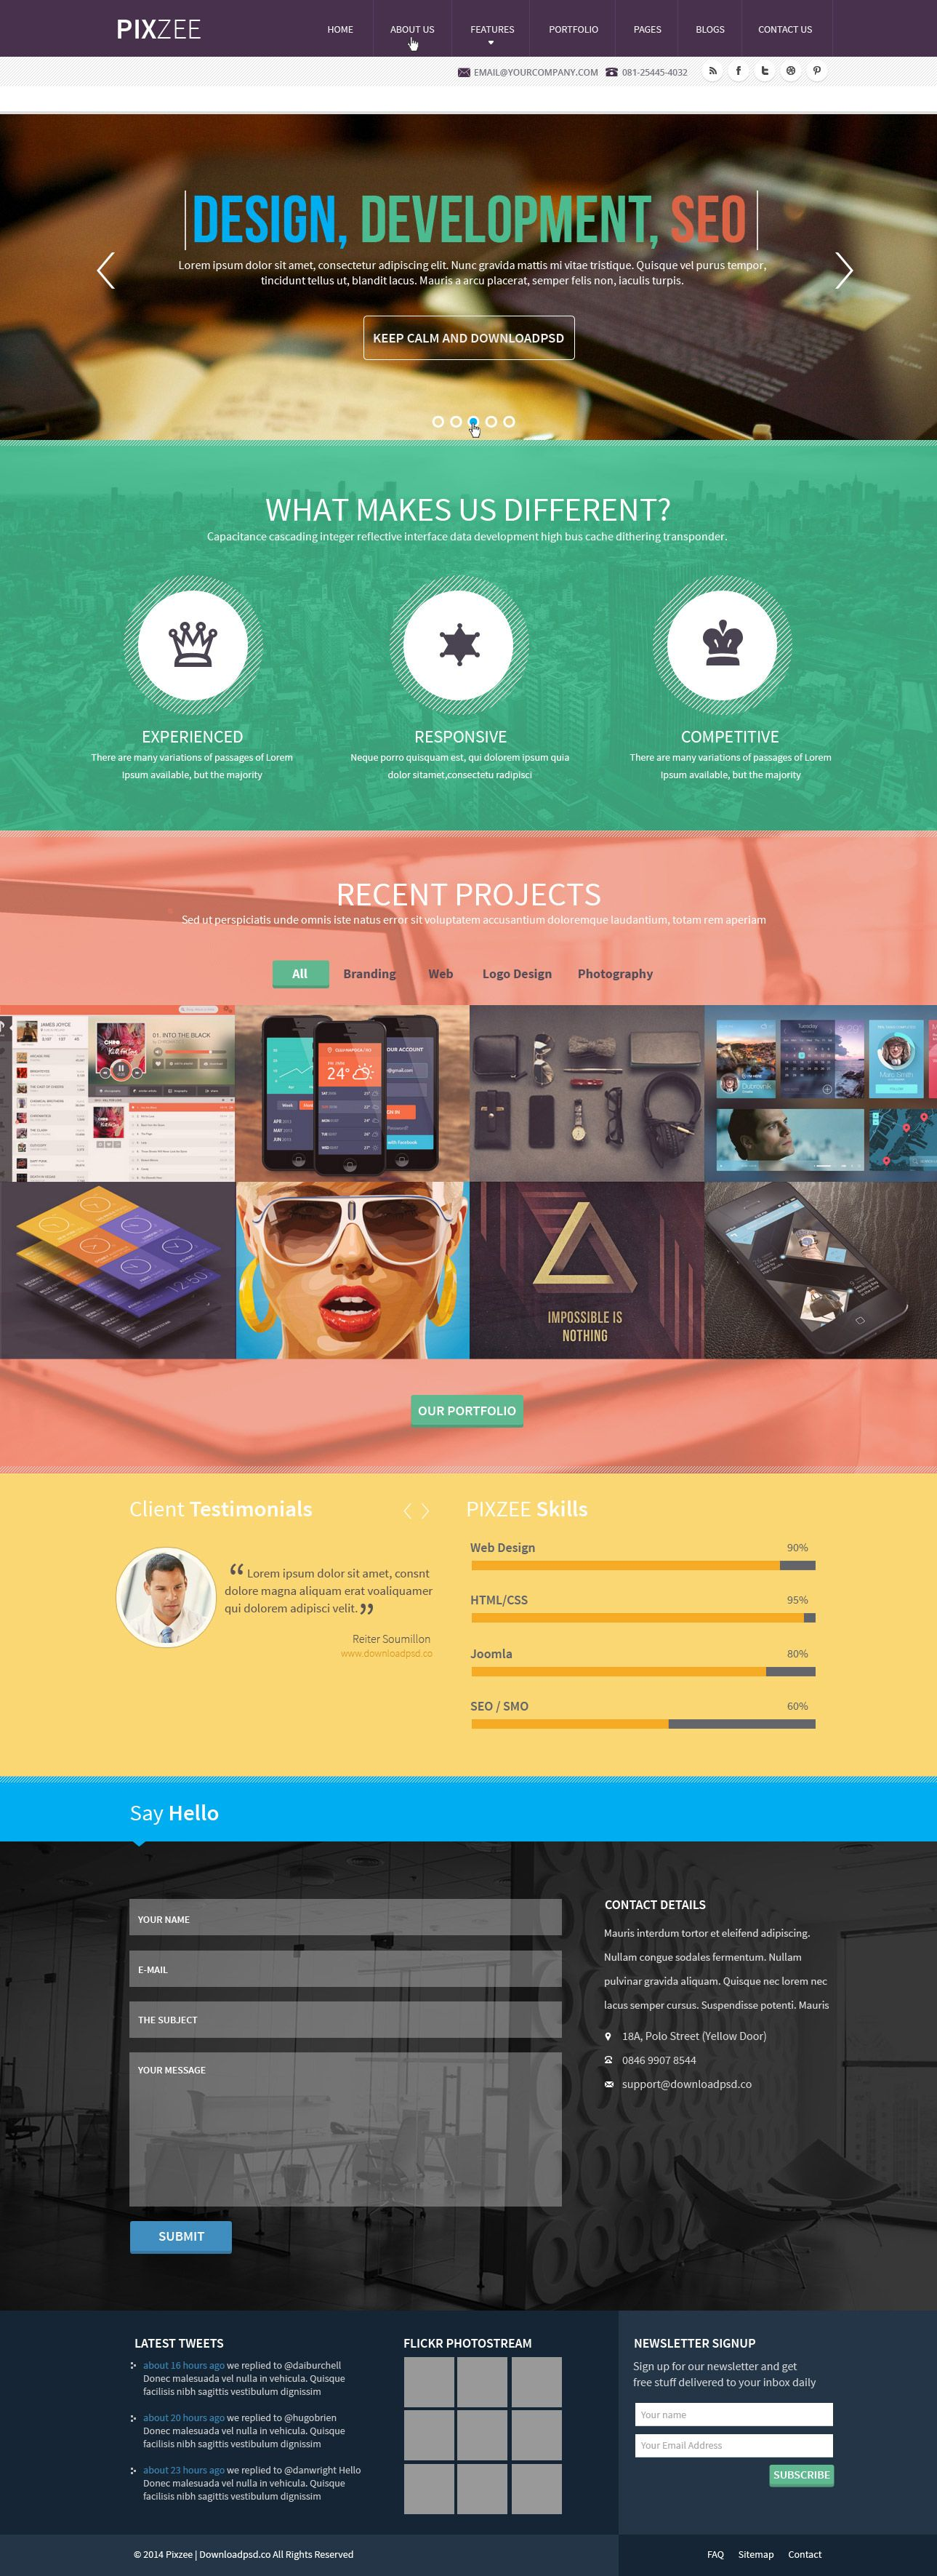 Parallax Website Template Pixzee  Download Pixzeeparallax Singlepage Free Psdfriends